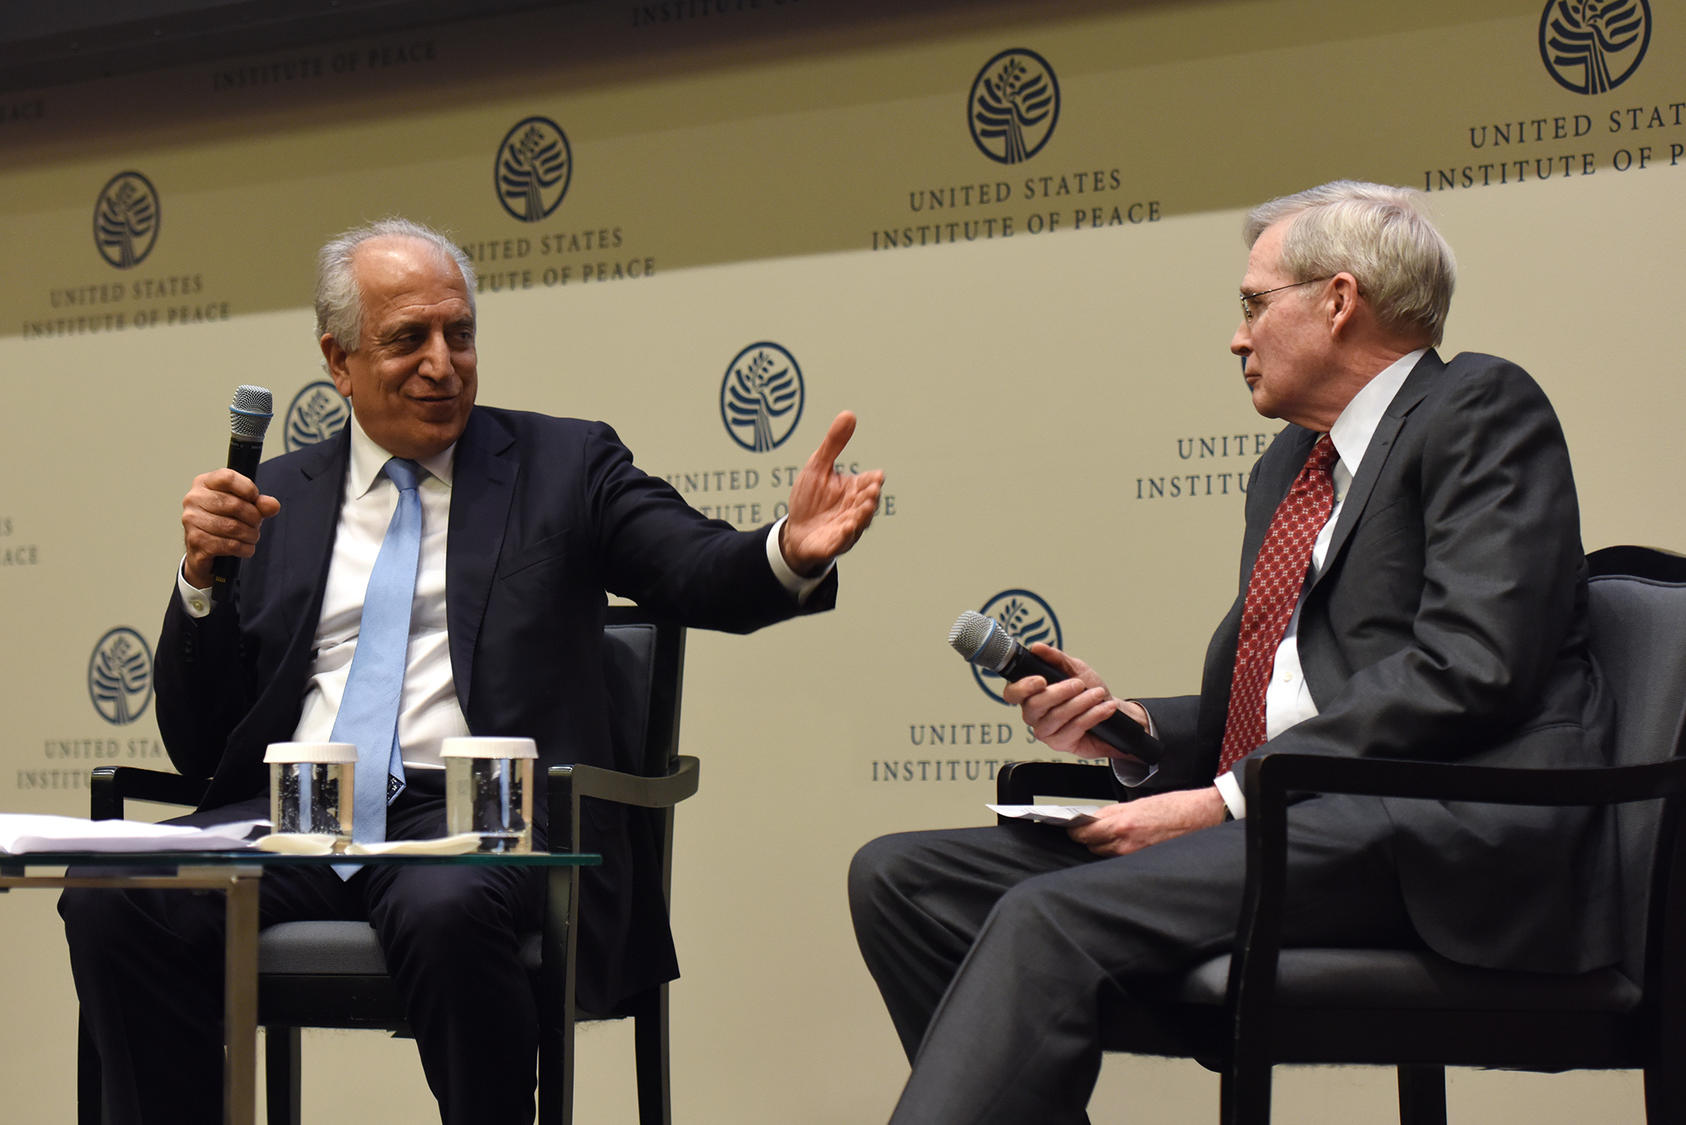 Special Representative for Afghanistan Reconciliation Zalmay Khalilzad speaks with Stephen J. Hadley, chair of USIP's Board of Directors.